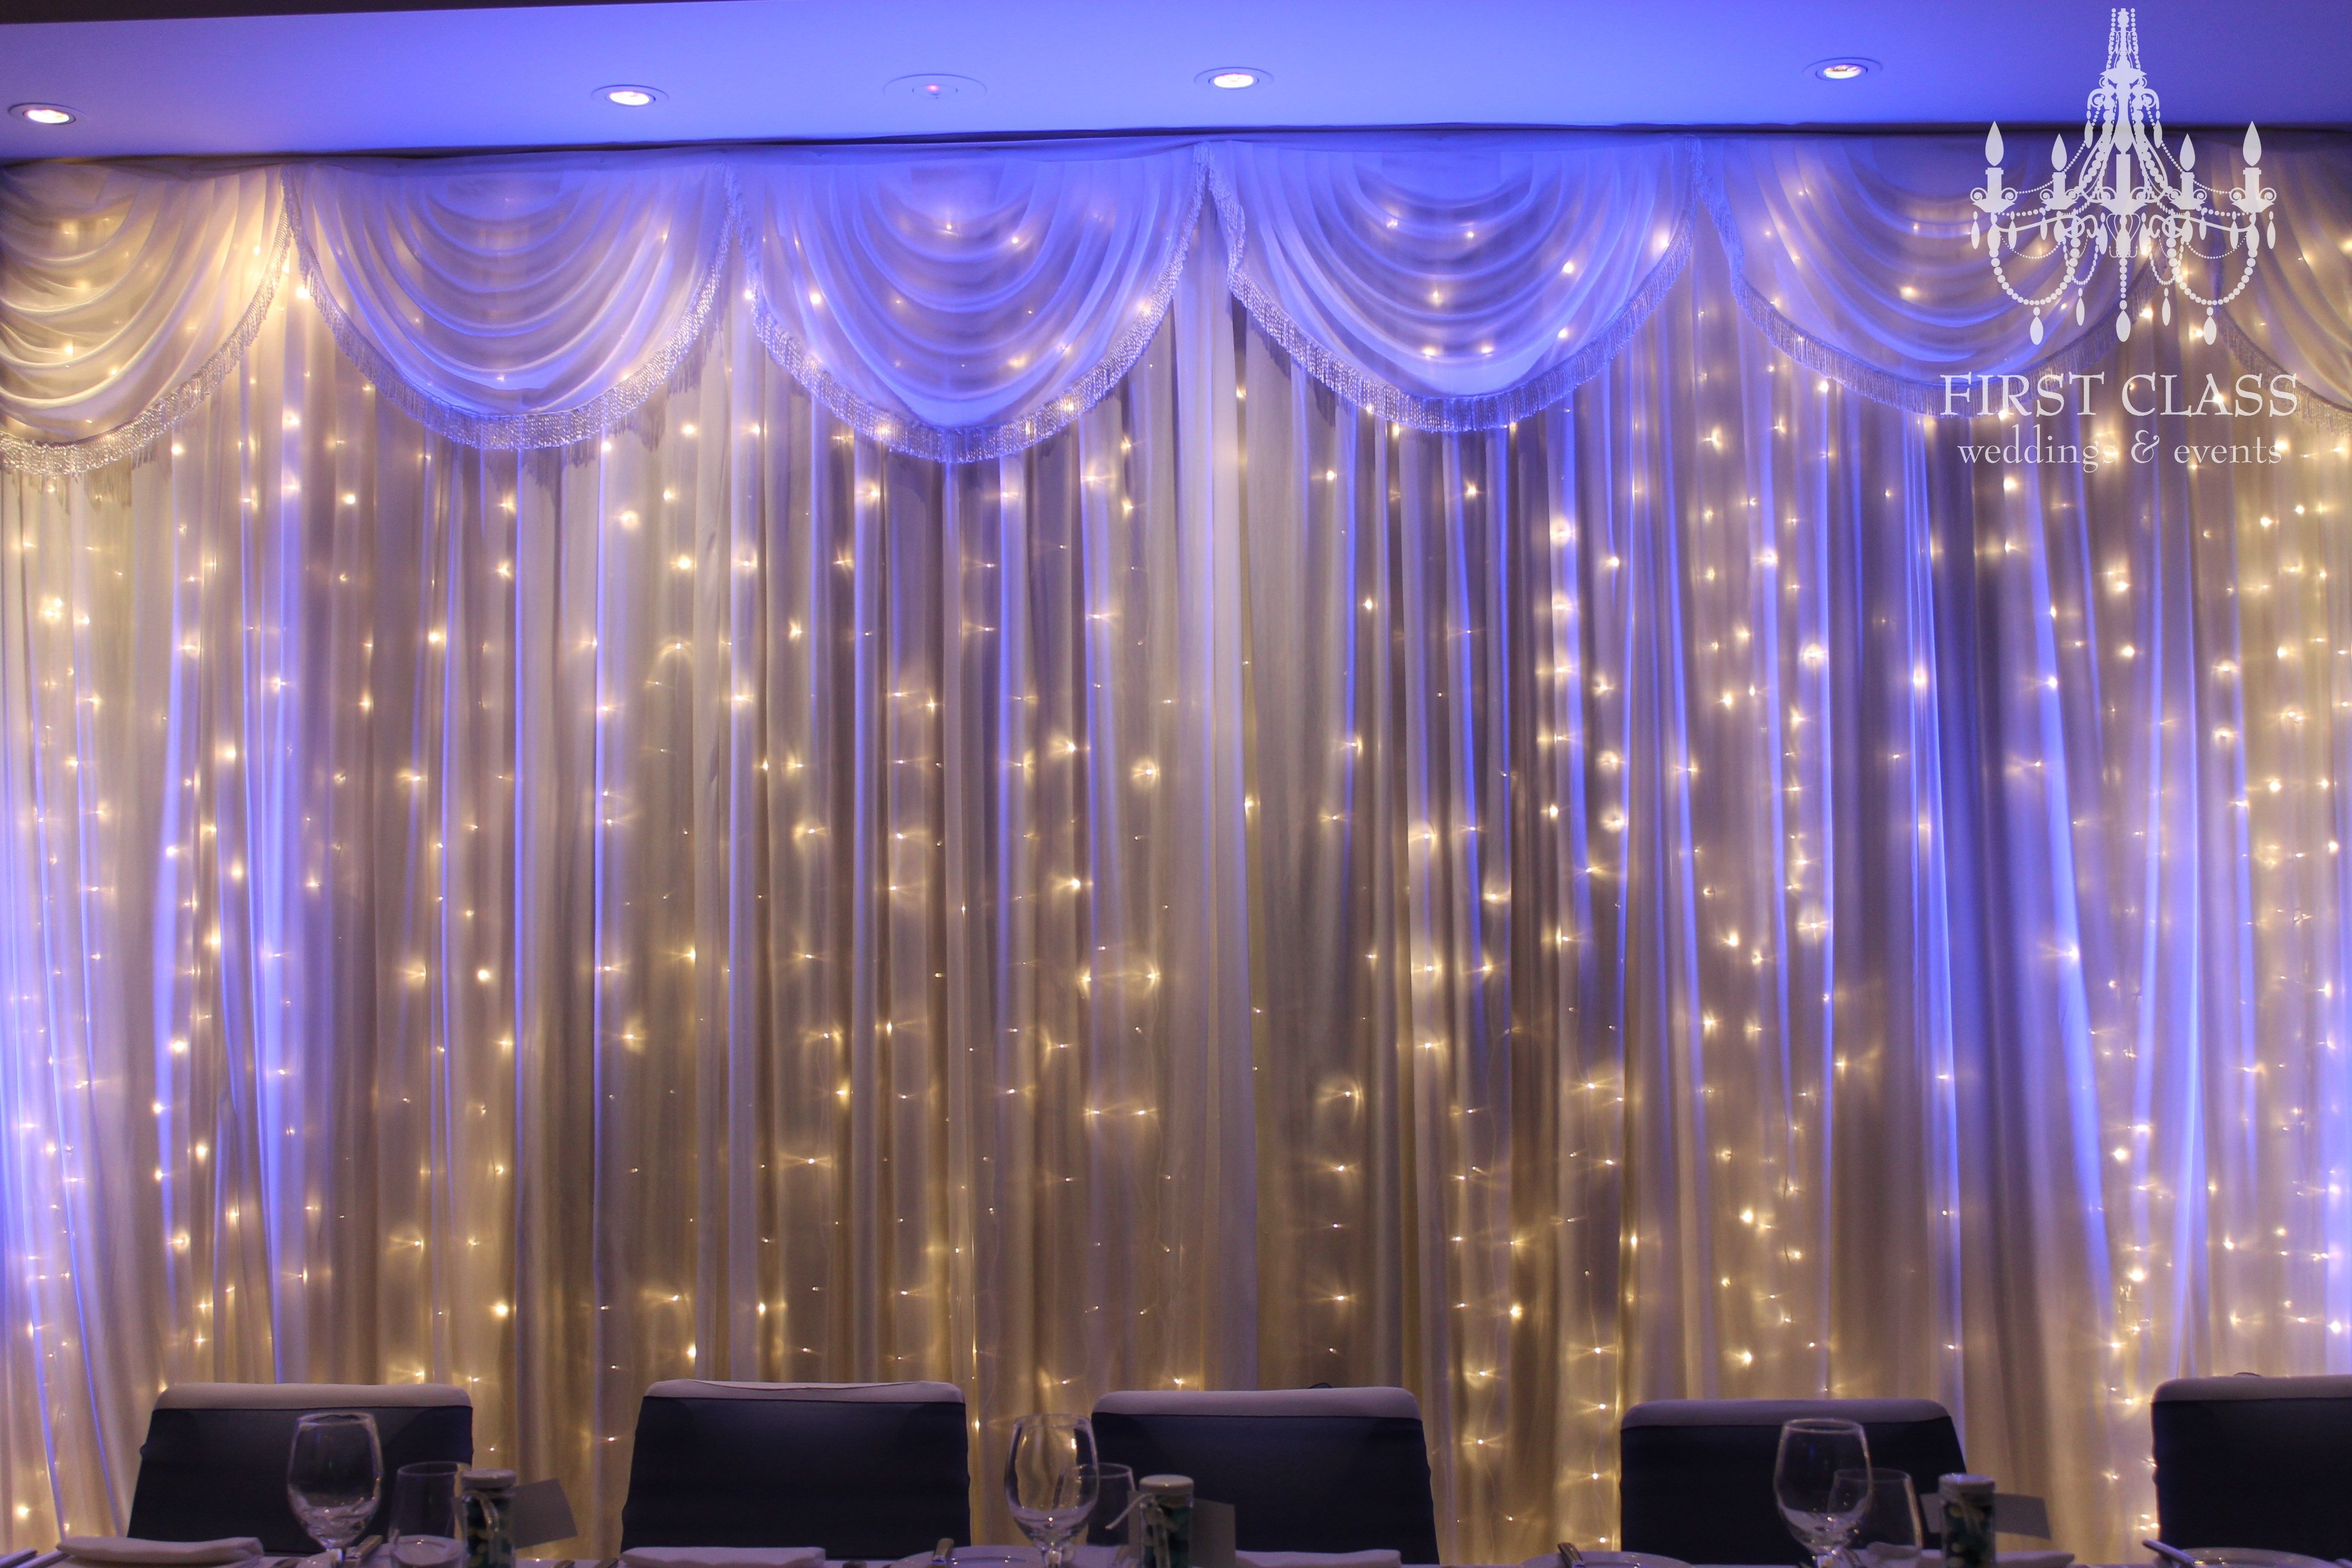 Wedding decoration stage backdrop  Mon Komo Hotel  First Class Weddings and Events  Brisbane Wedding